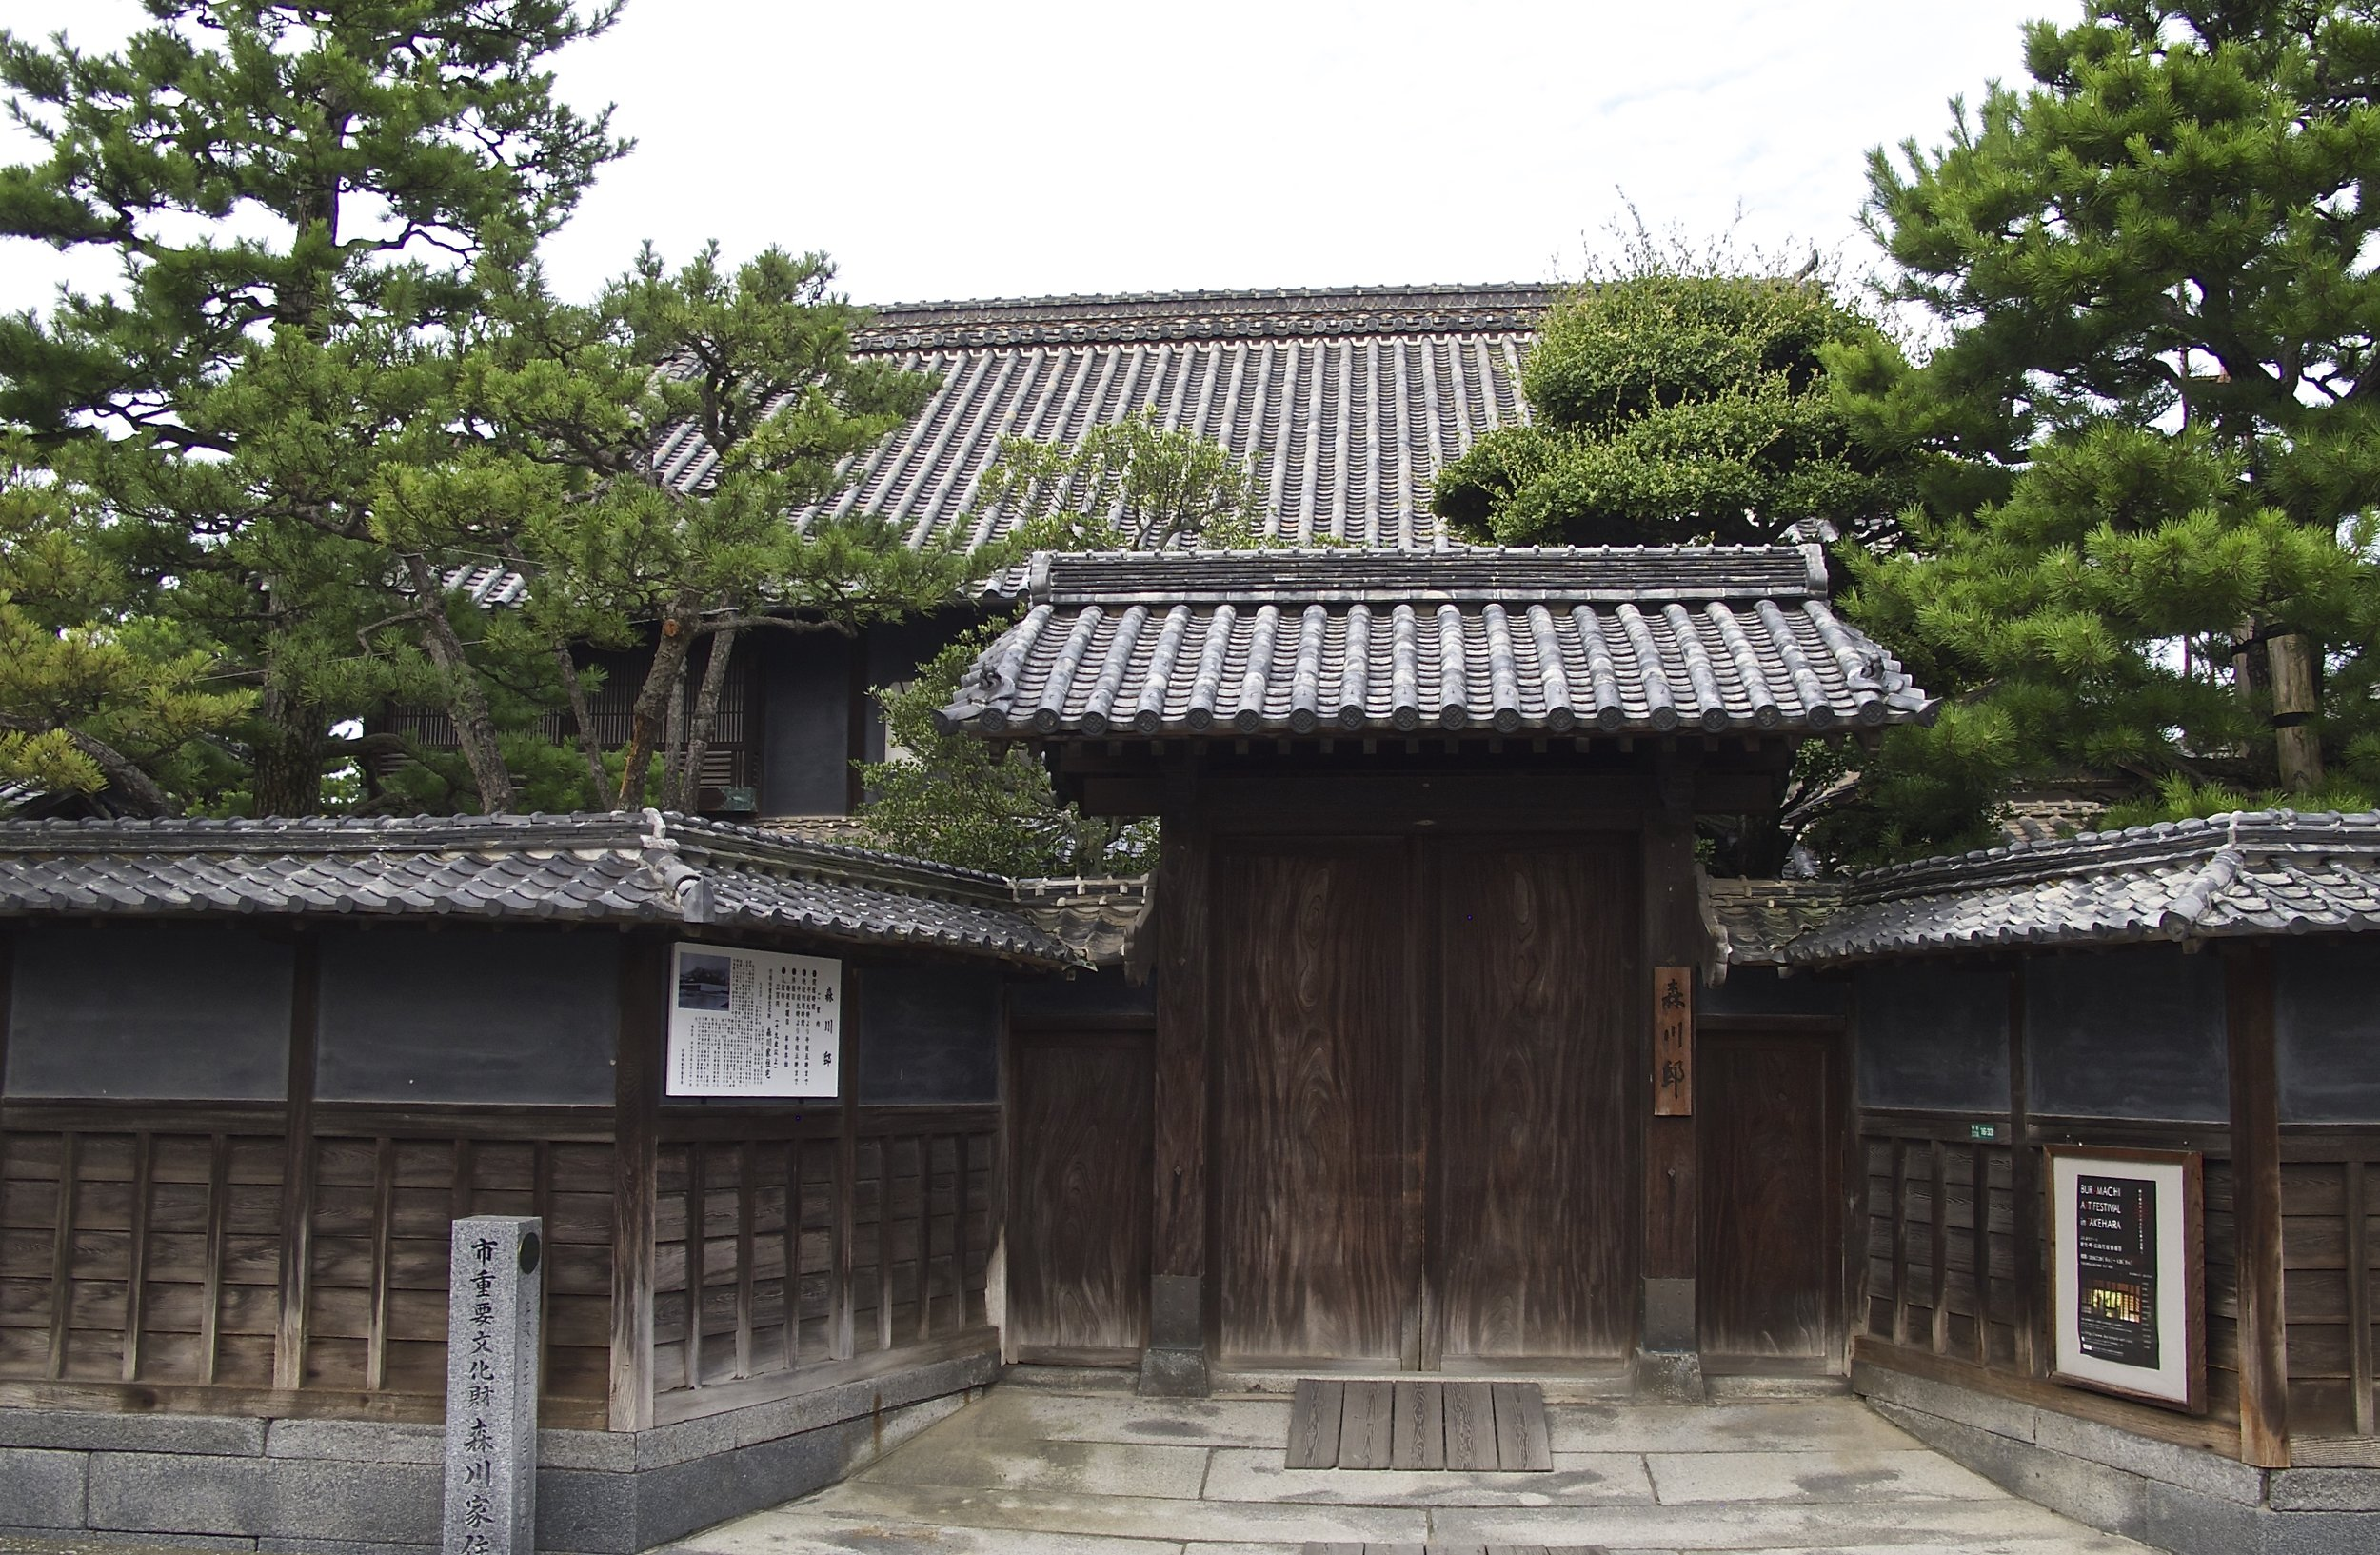 The main gate and entrance hall behind it are from an Edo-era samurai house in the town of Fukuyama further east.